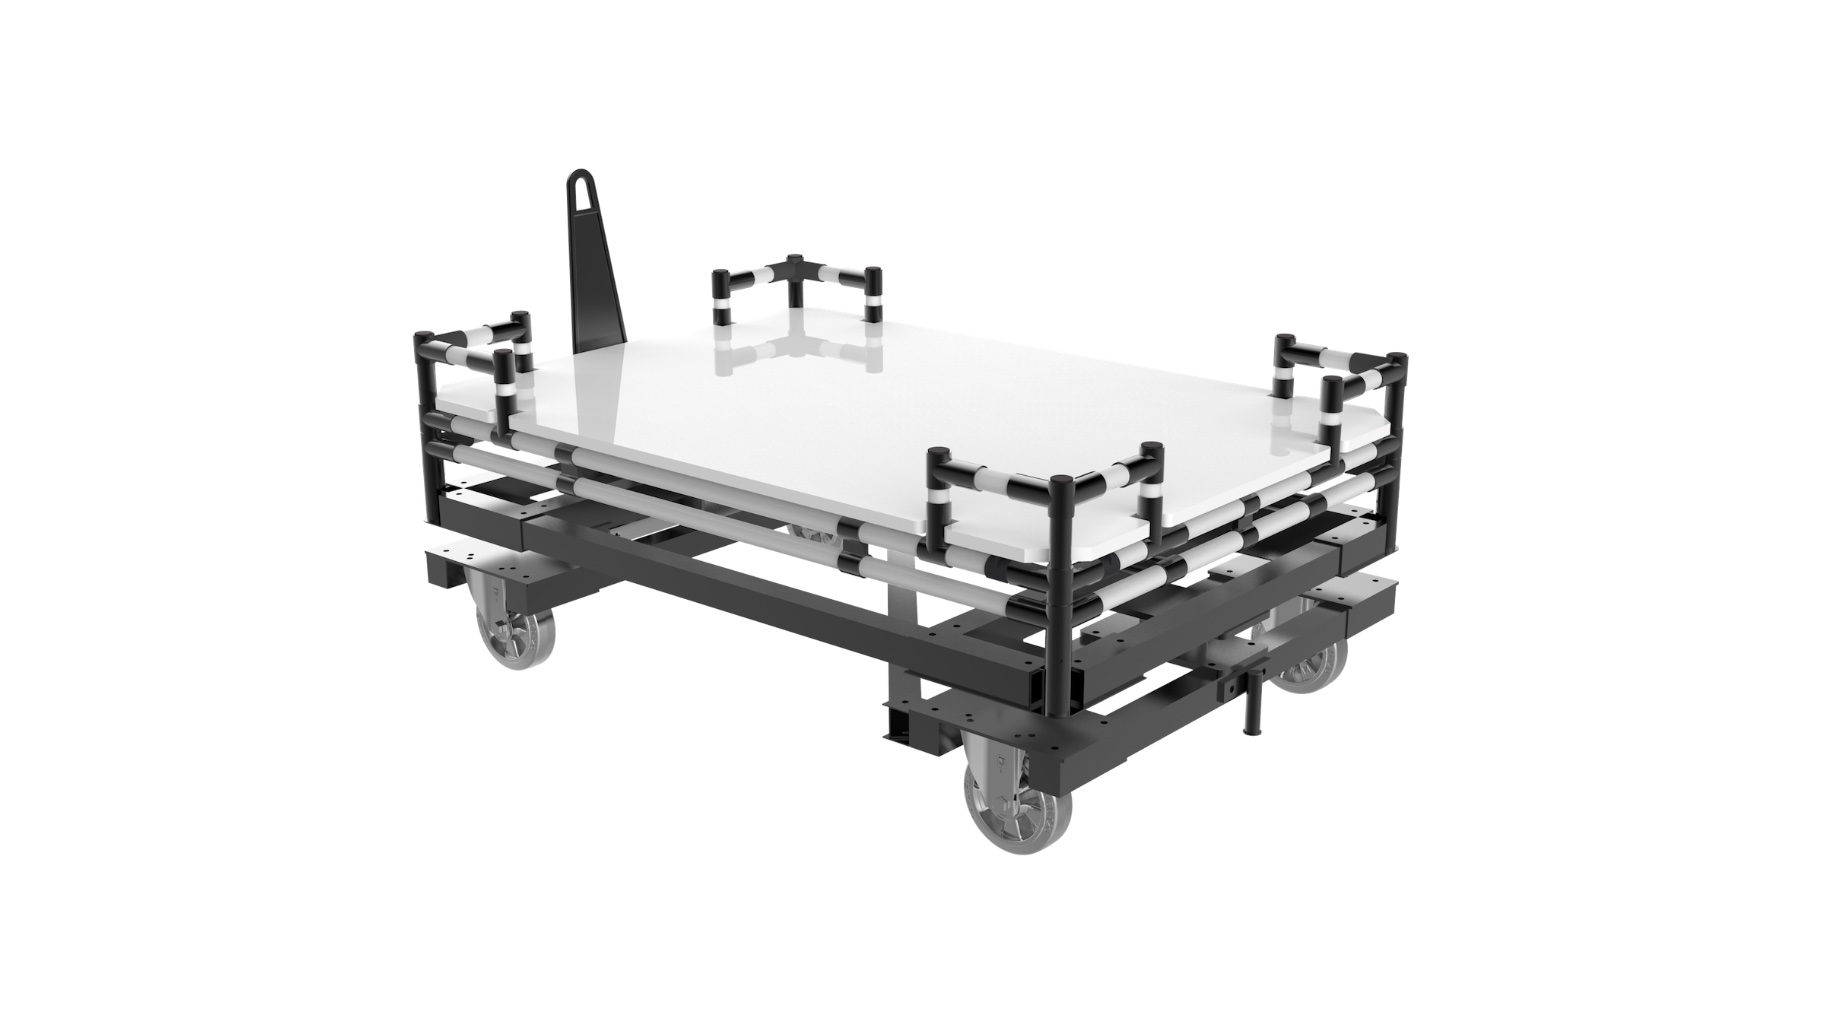 Lighting - Single-track towable trolley for pallet transport.